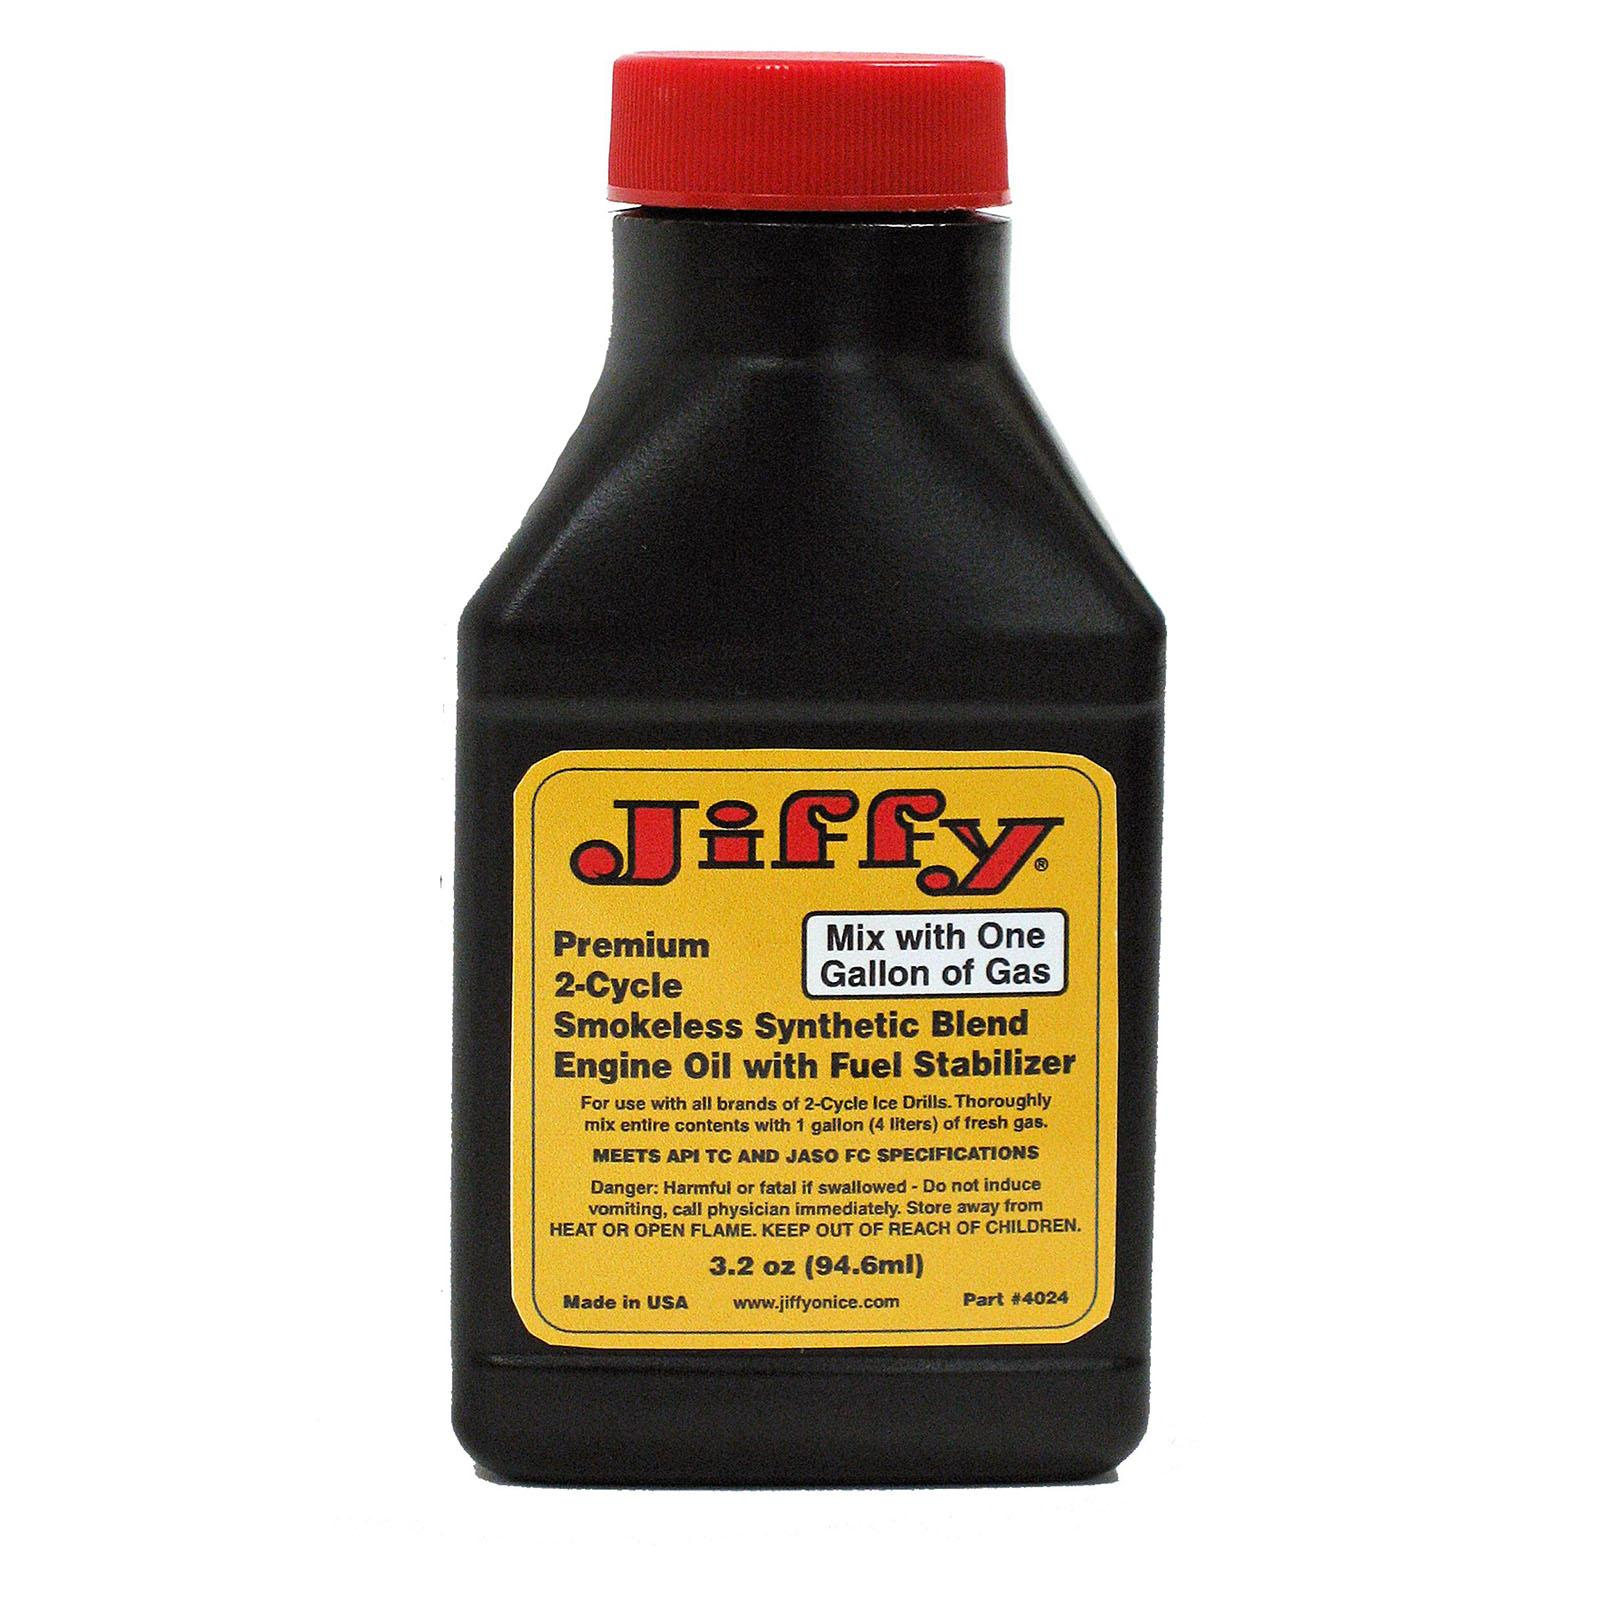 Jiffy 2 Cycle Engine Oil